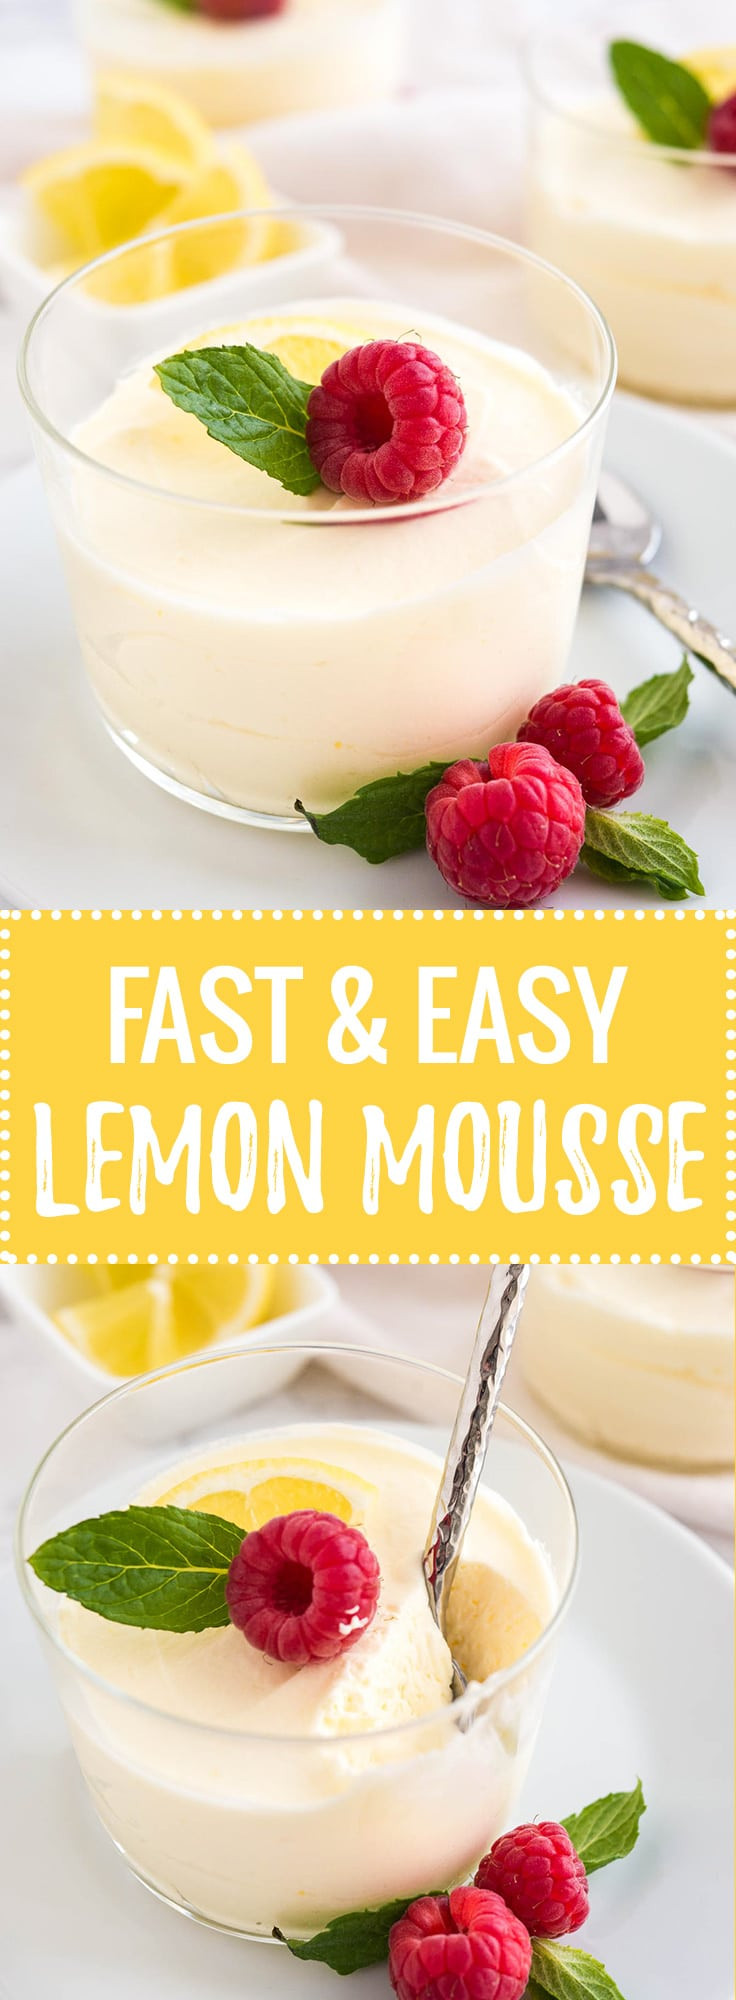 This easy Lemon Curd Mousse has only 3 ingredients and can be made in minutes! A perfect cold summer dessert that will impress your guests and is dangerously delicious, yet SO easy to make from scratch.